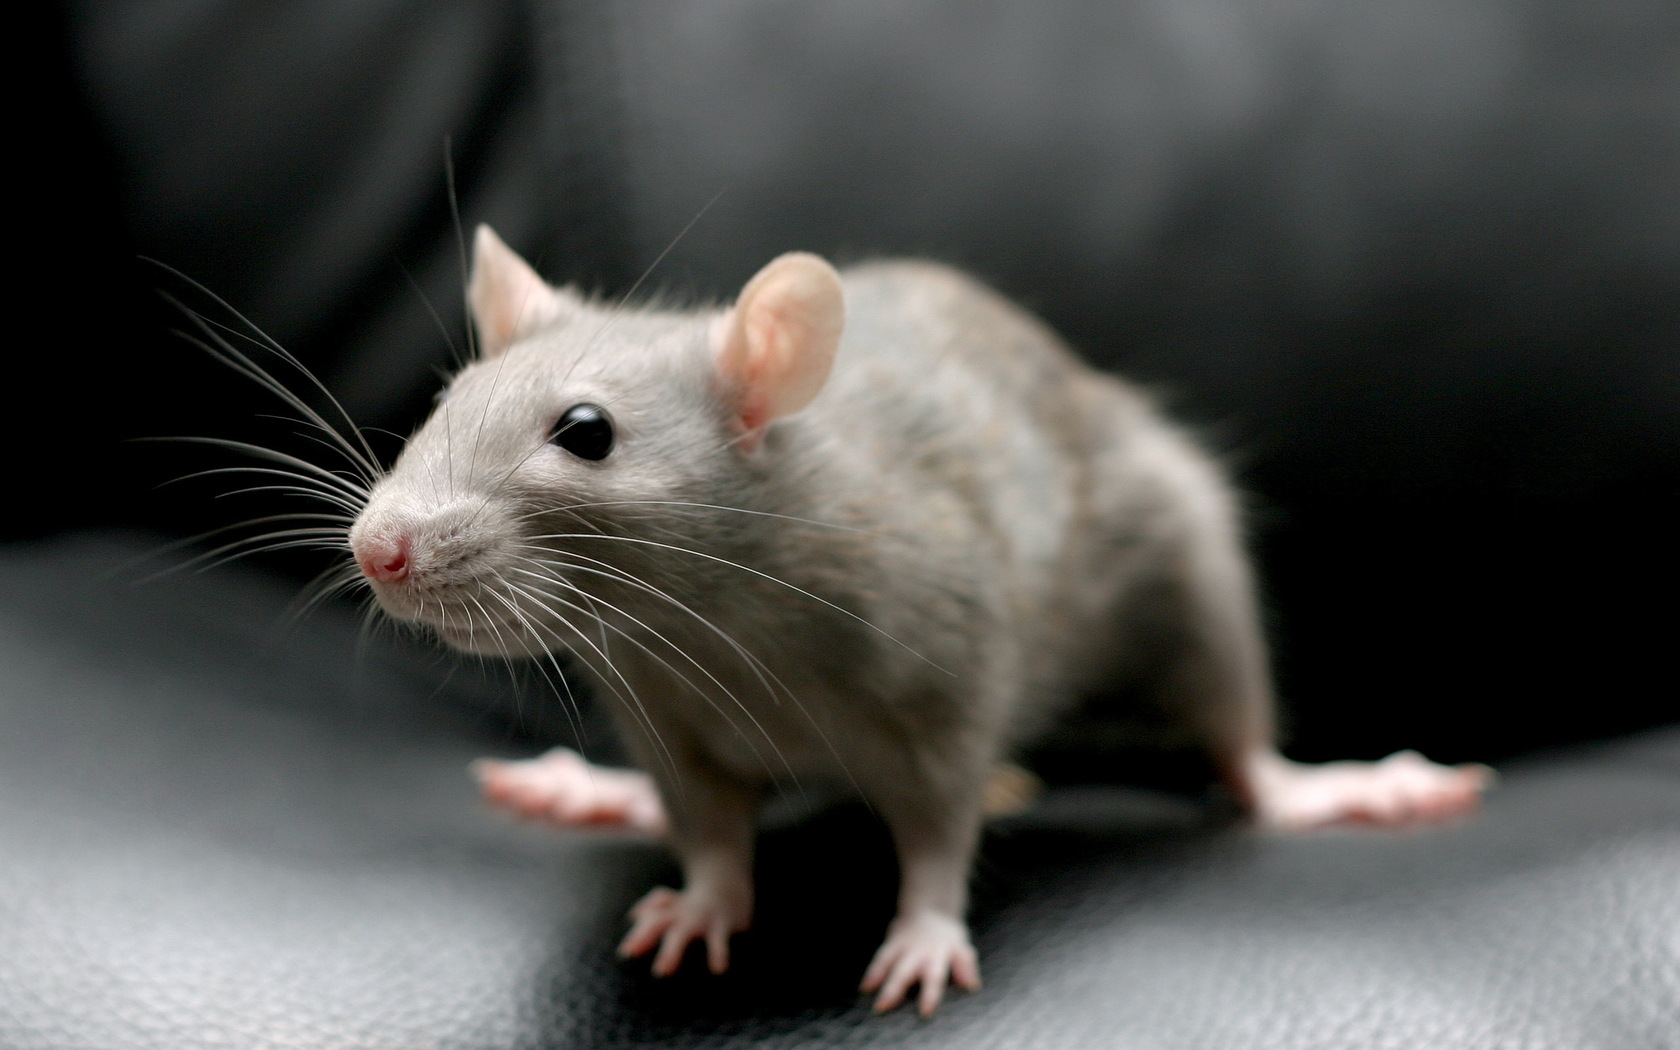 mouse animal high quality new wallpaper